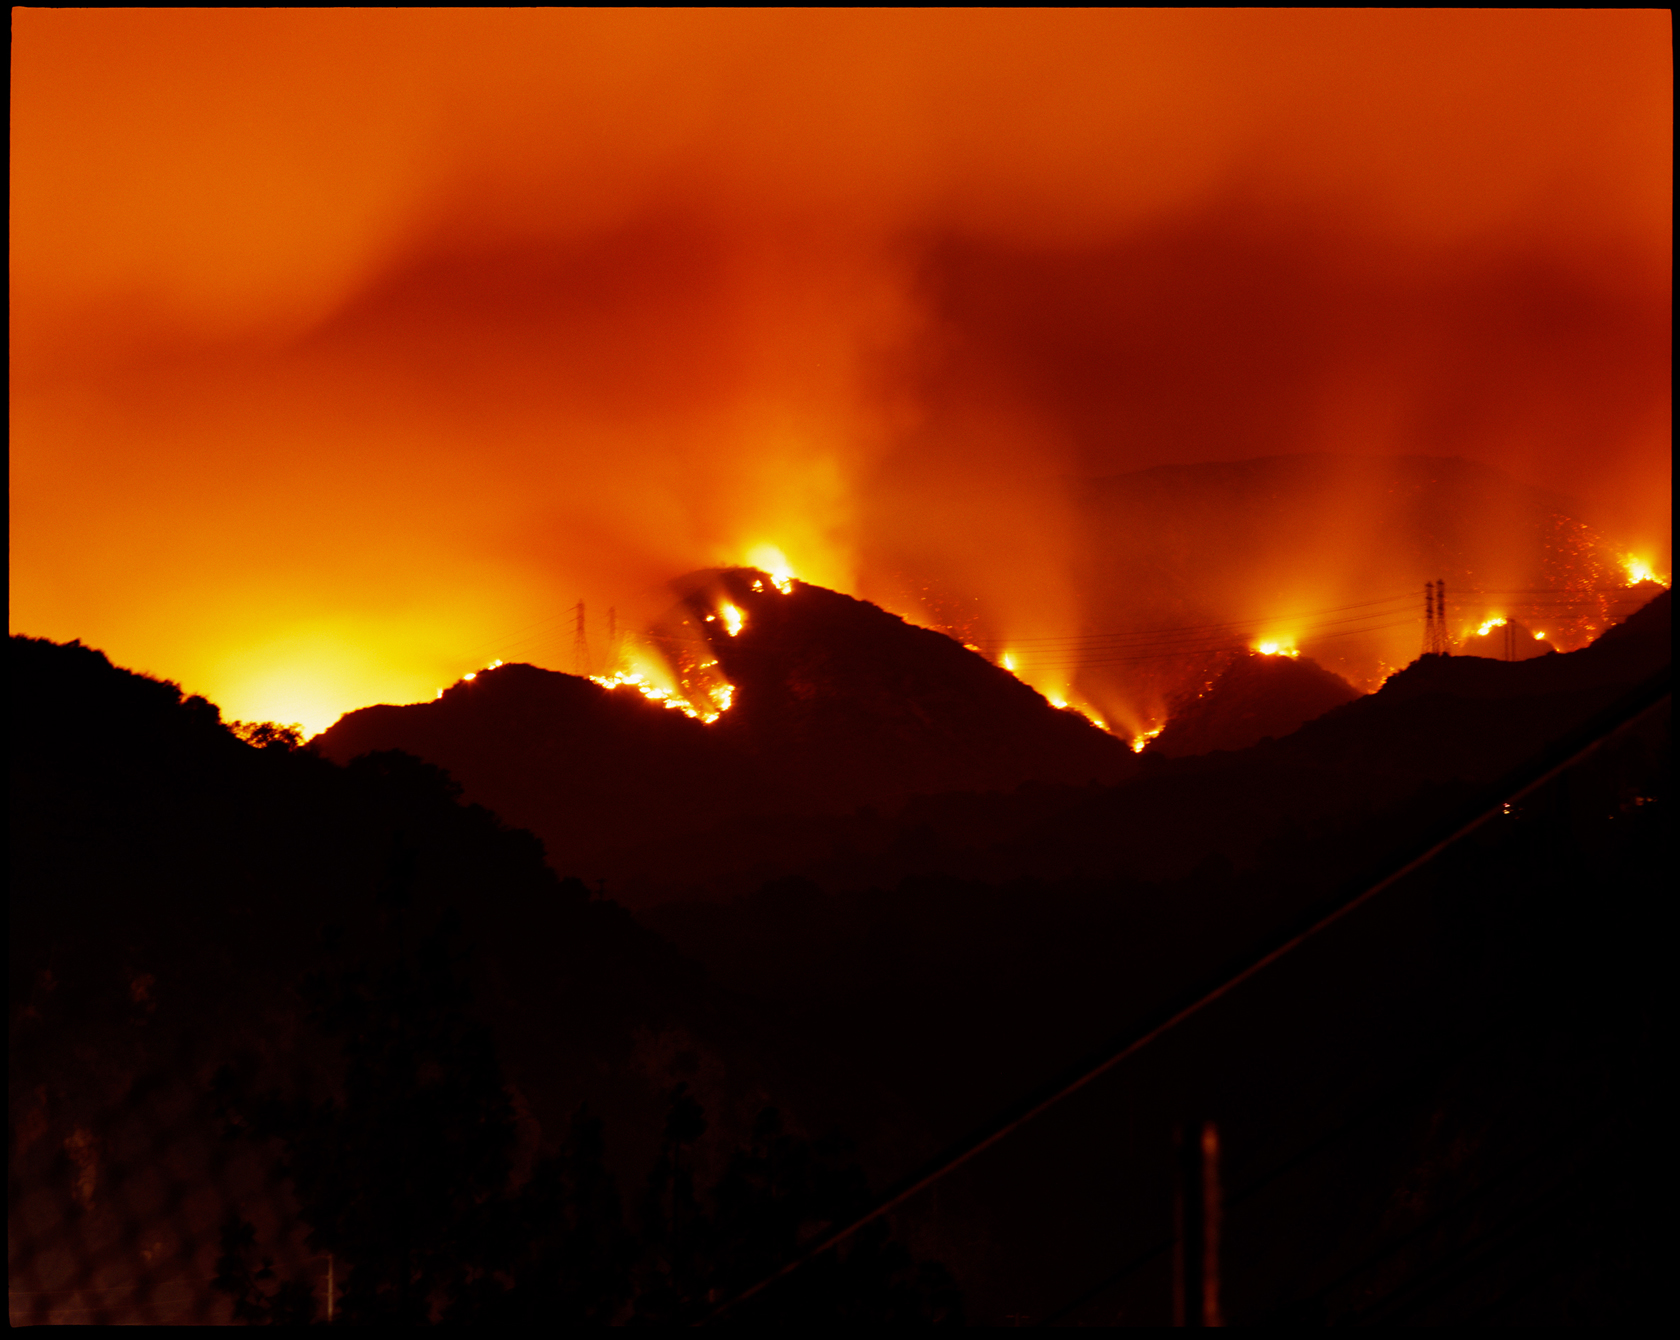 Connie Samaras,  Surface Events: Station Fire, Pasadena, 2007   Digital pigment print, sizes and editions variable   Inquire